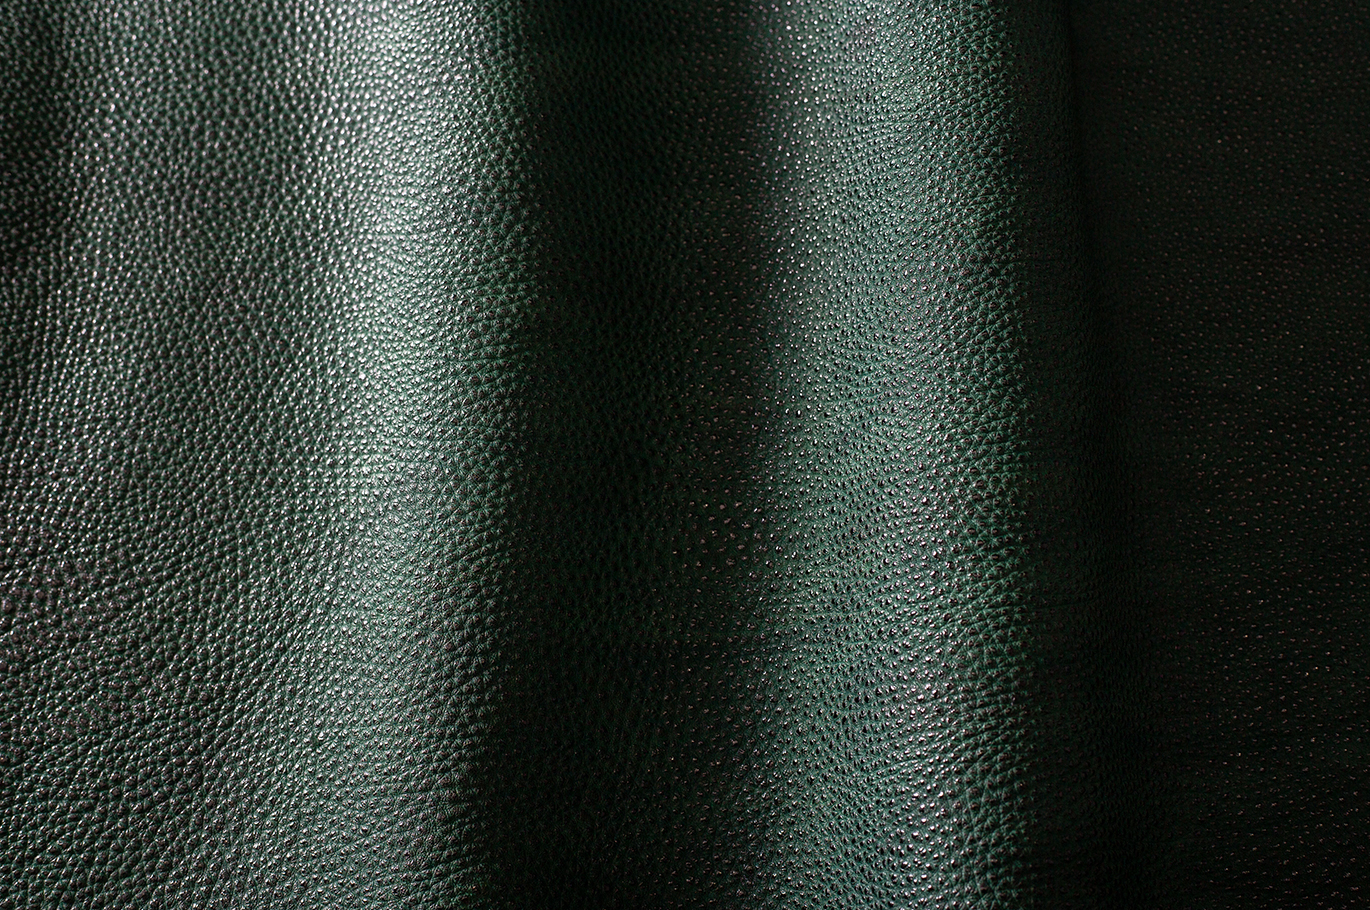 KUROZAN LEATHER KIWAMI JEWELGREEN